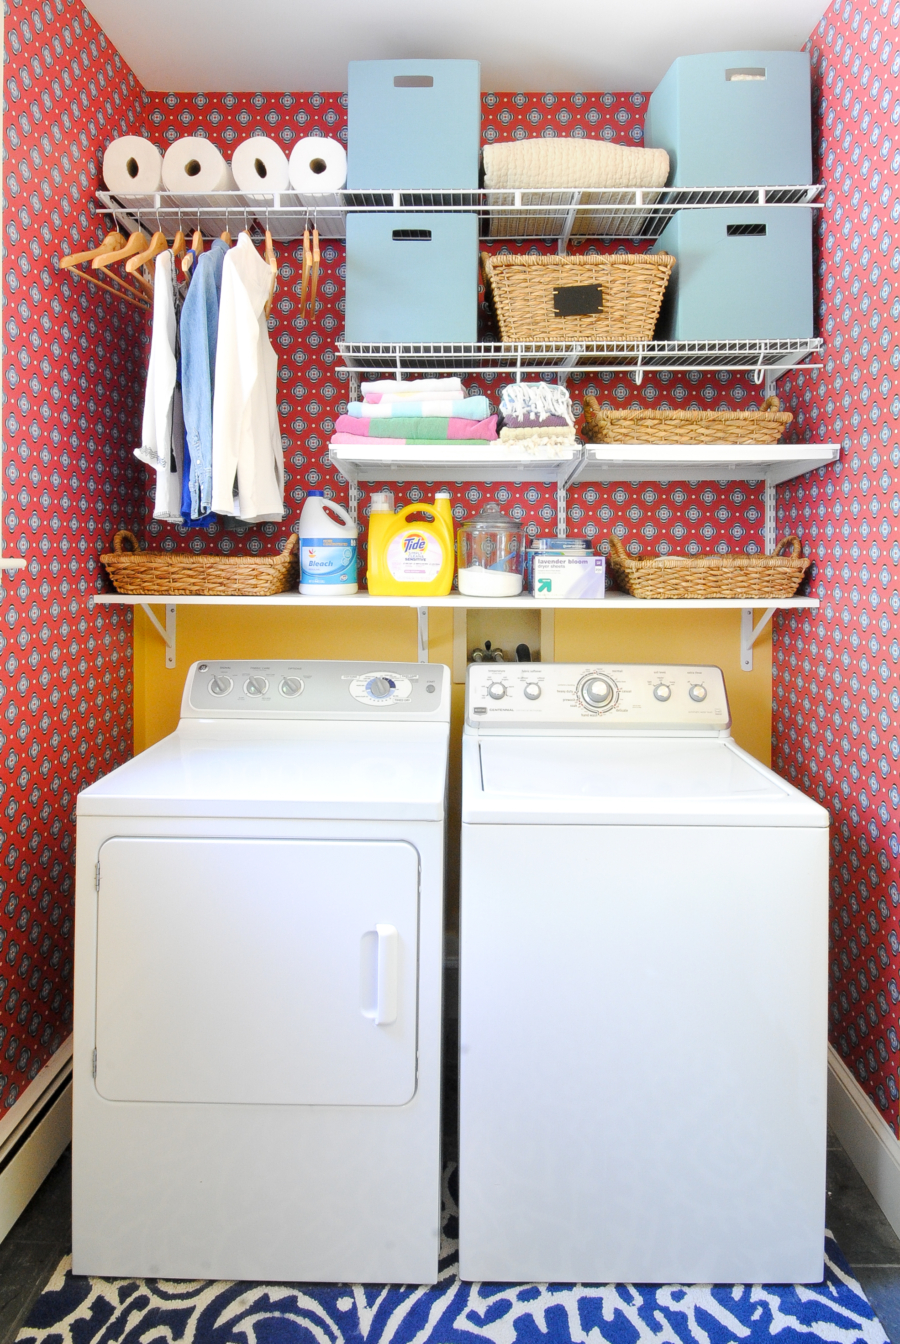 Colorful red and blue laundry room with open shelves